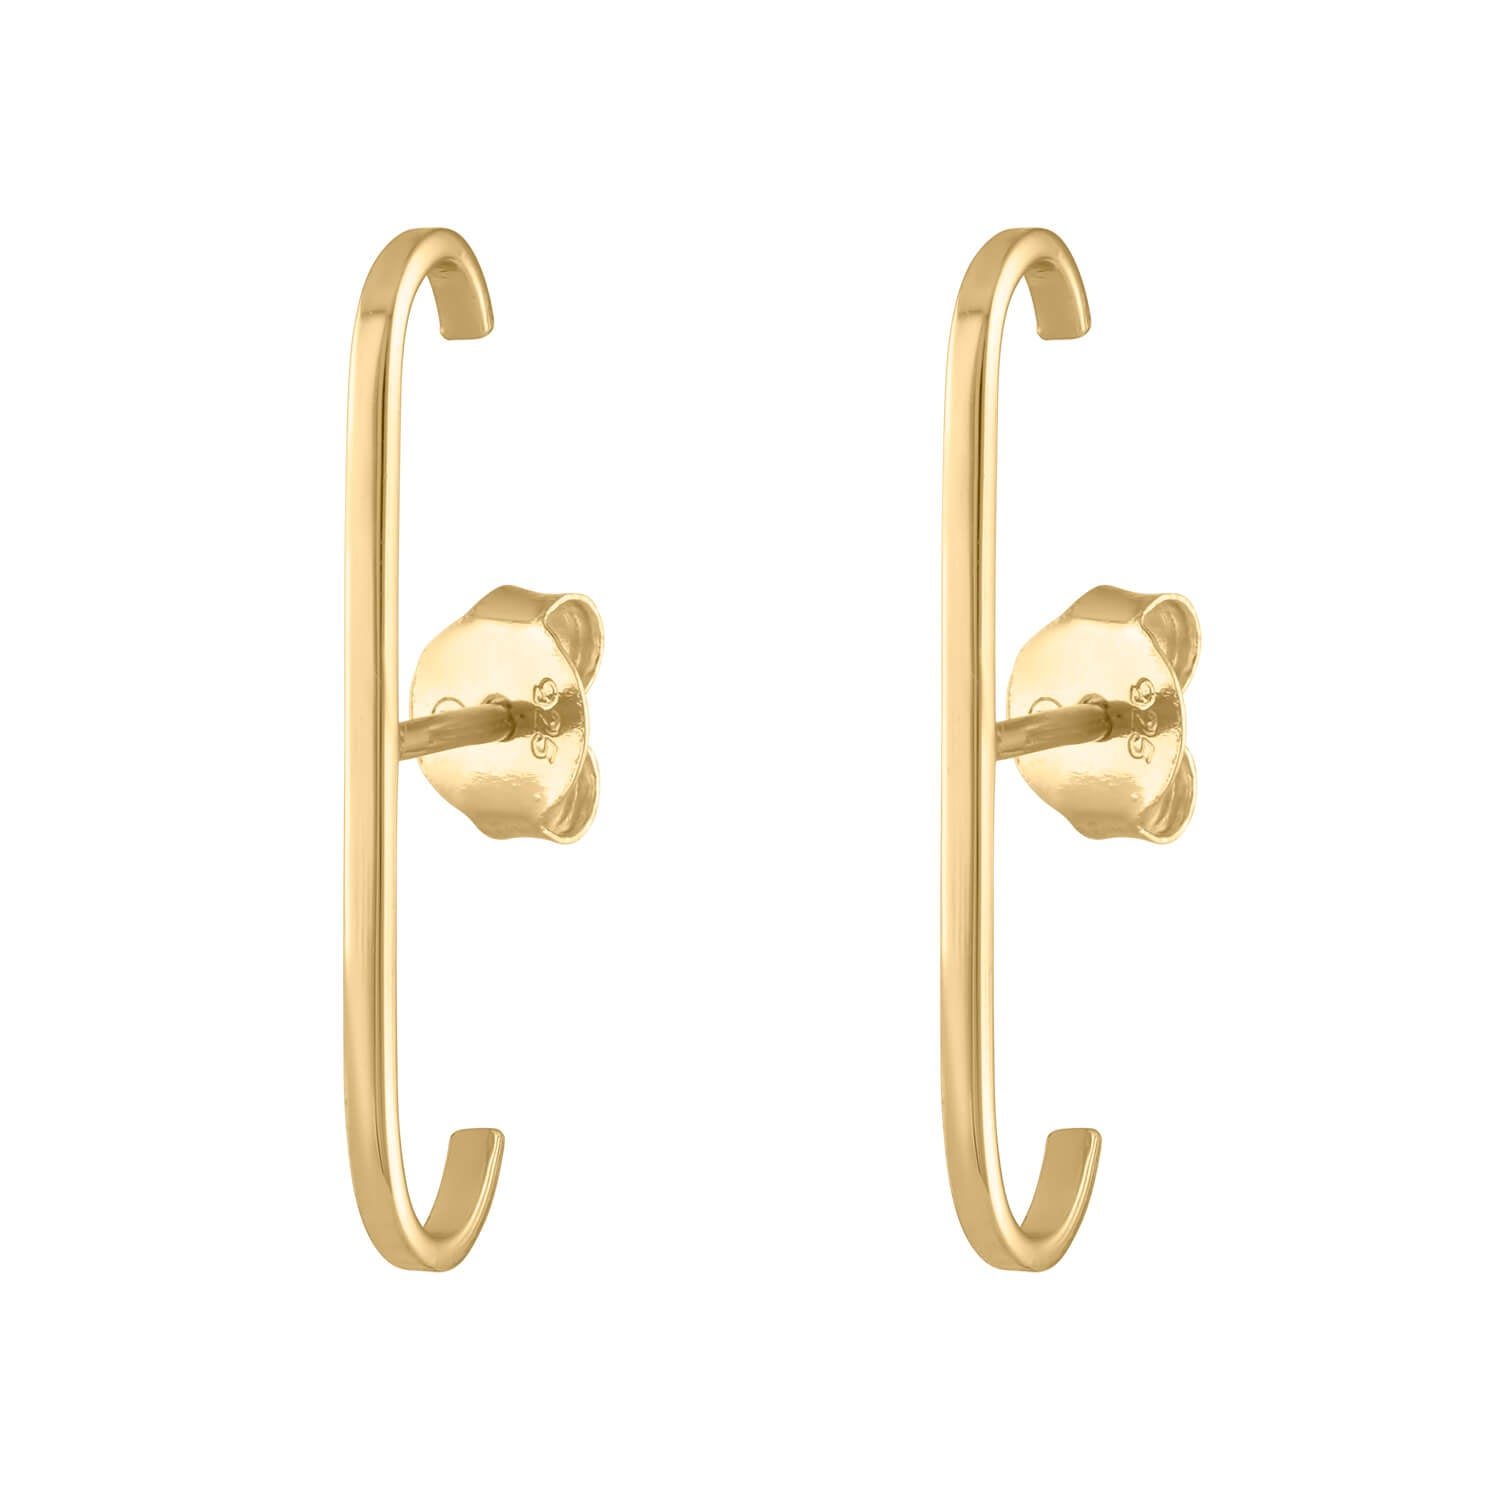 Classic Suspender Earrings in Gold Vermeil